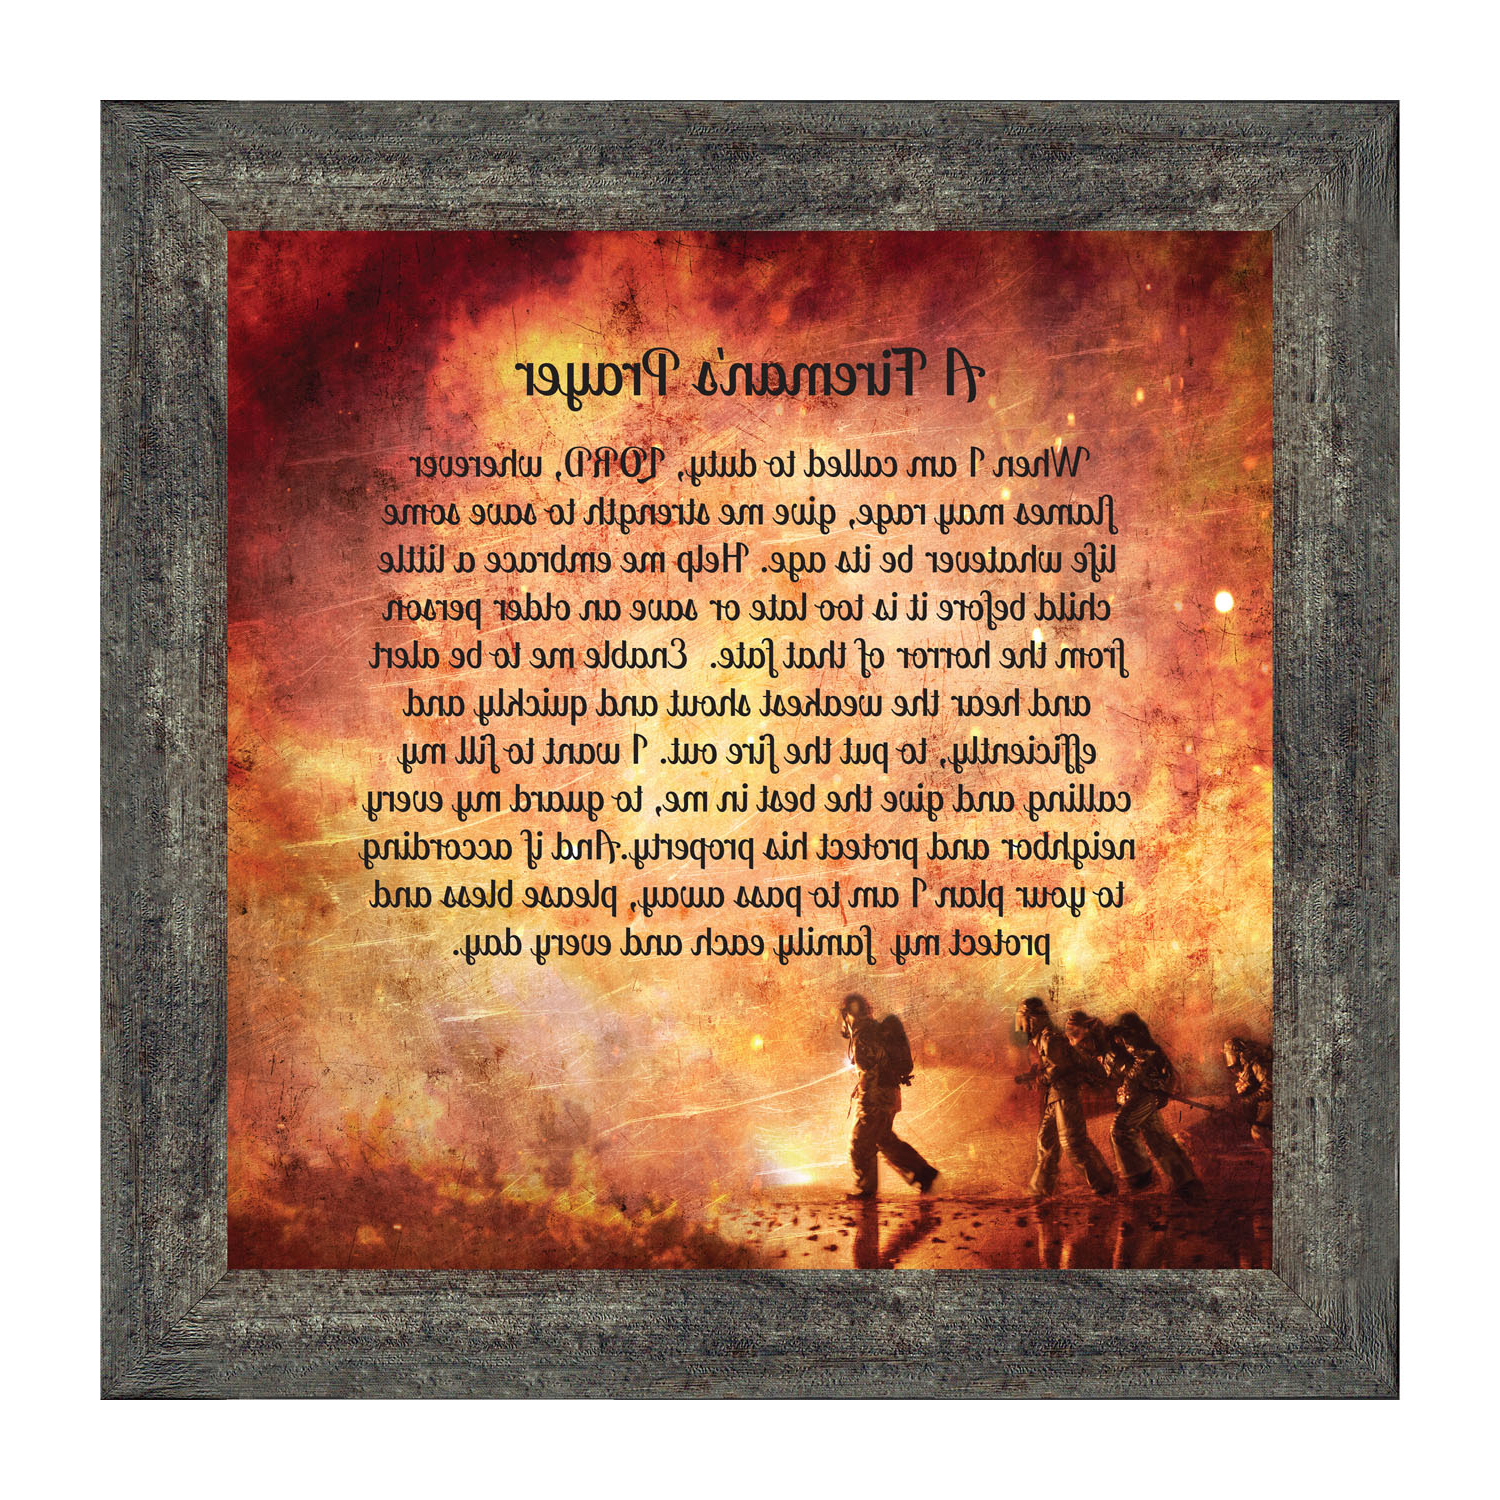 Trendy A Fireman Prayer Wall Hangings Intended For Firefighter Gifts For Men And Women, Fire Academy Graduation Gift, Fire Fighter Gifts Or Firehouse Decor, A Fireman's Prayer Framed Wall Art For Home (View 10 of 20)